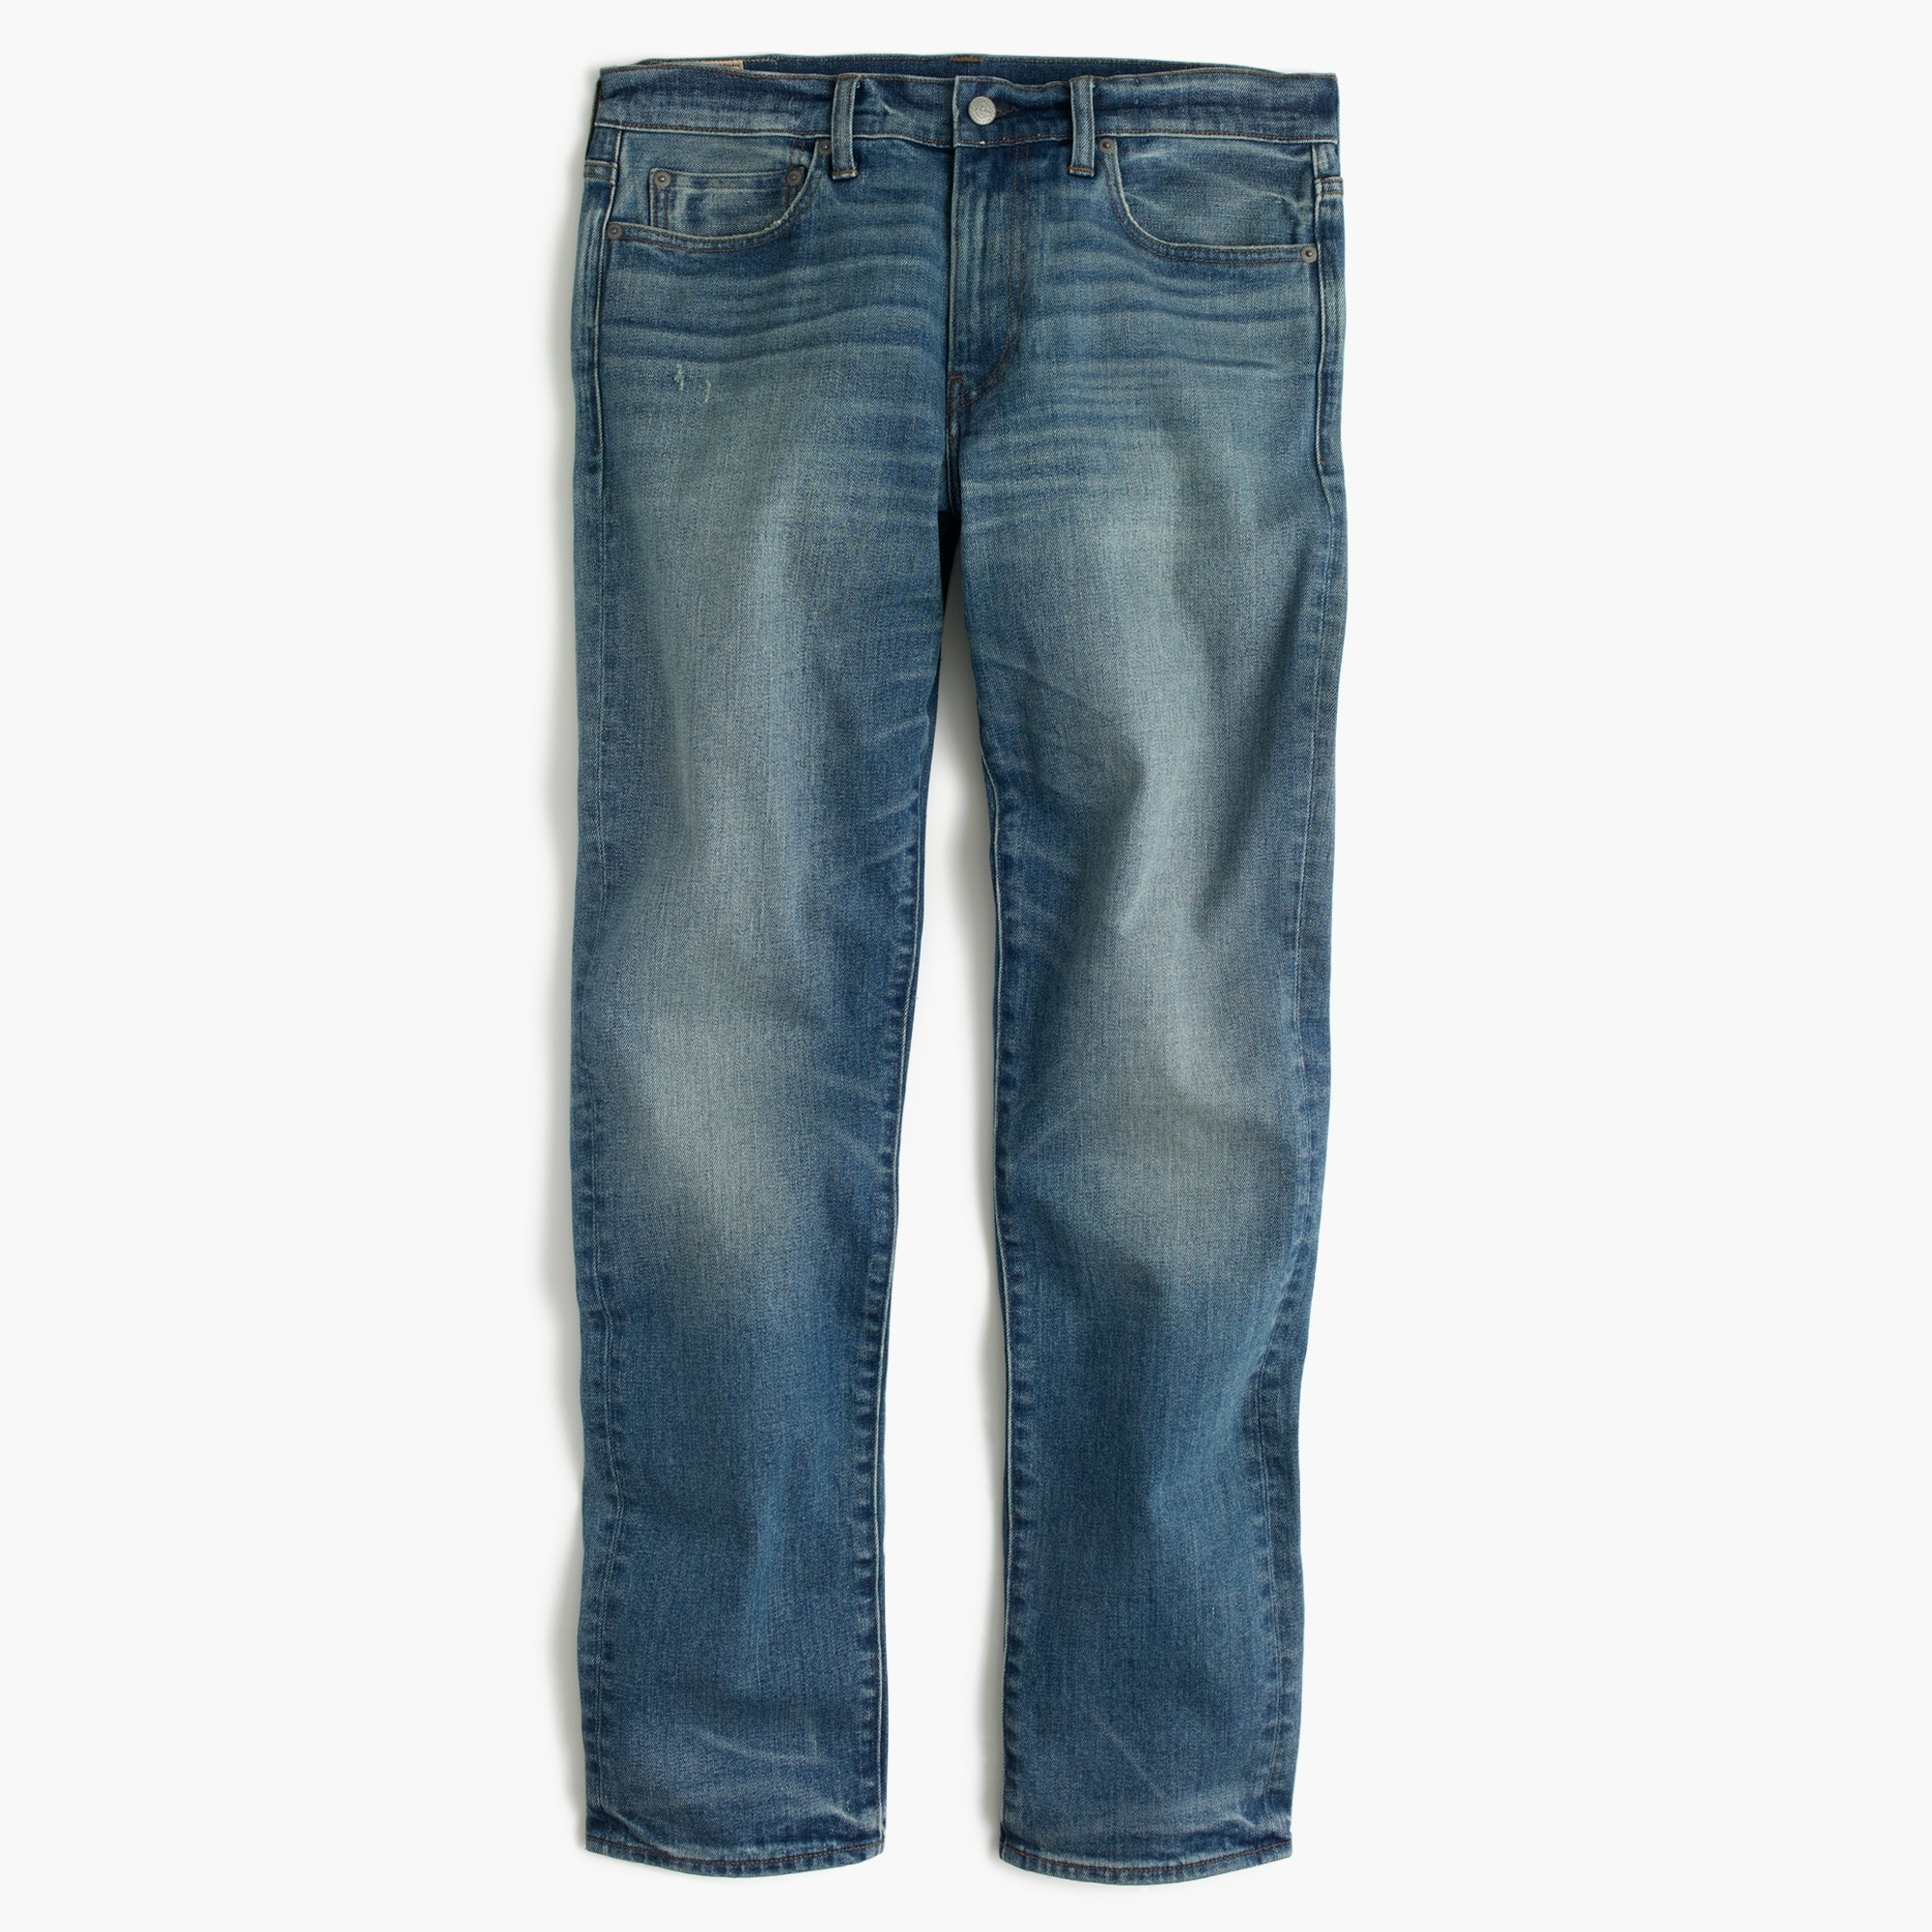 770 Straight-fit stretch jean in Whitford wash